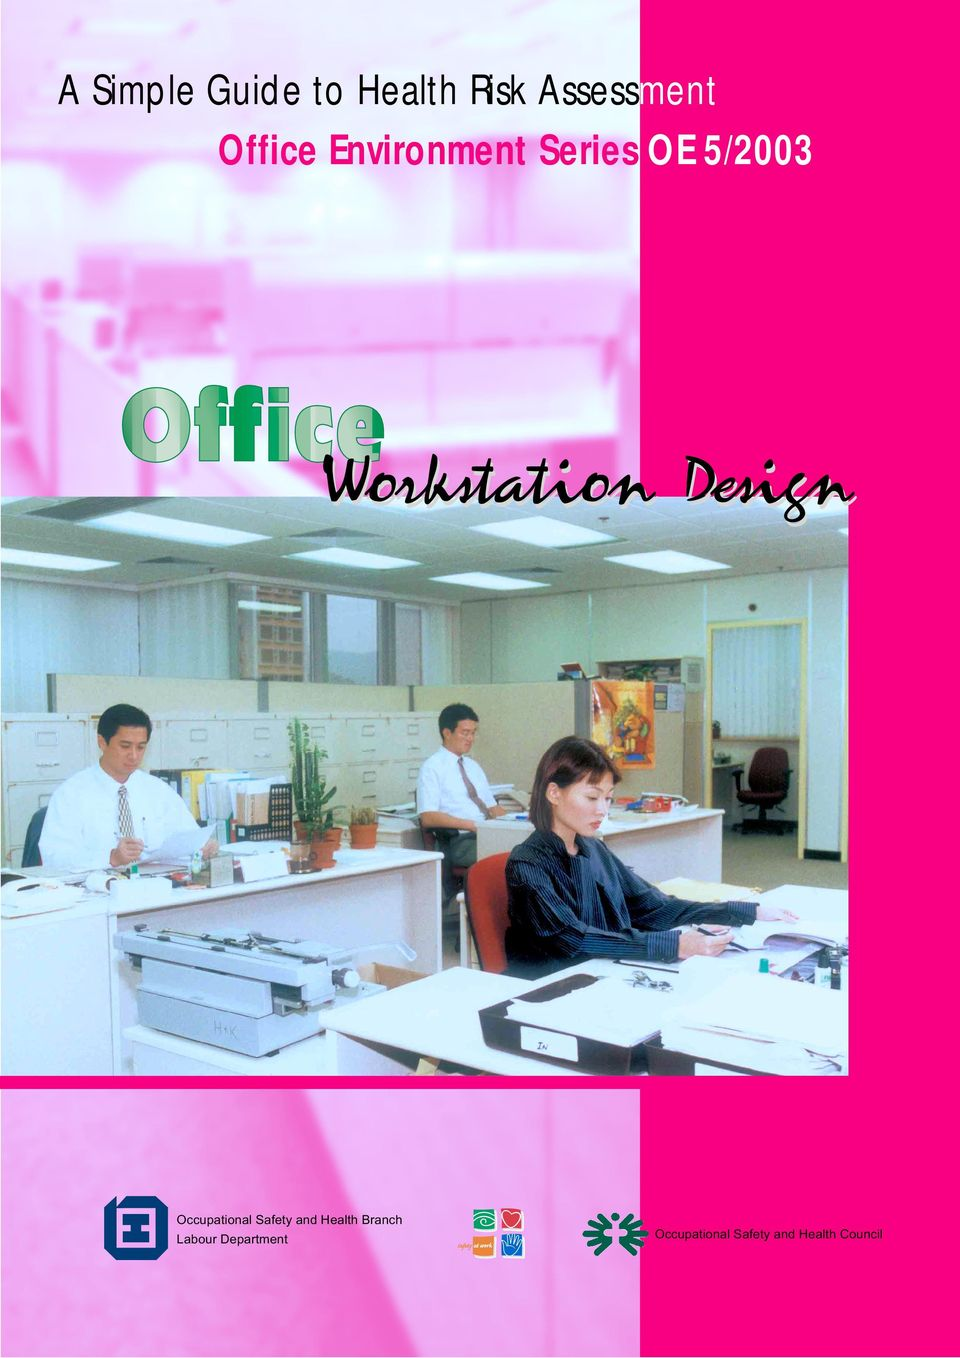 Occupational Safety and Health Branch